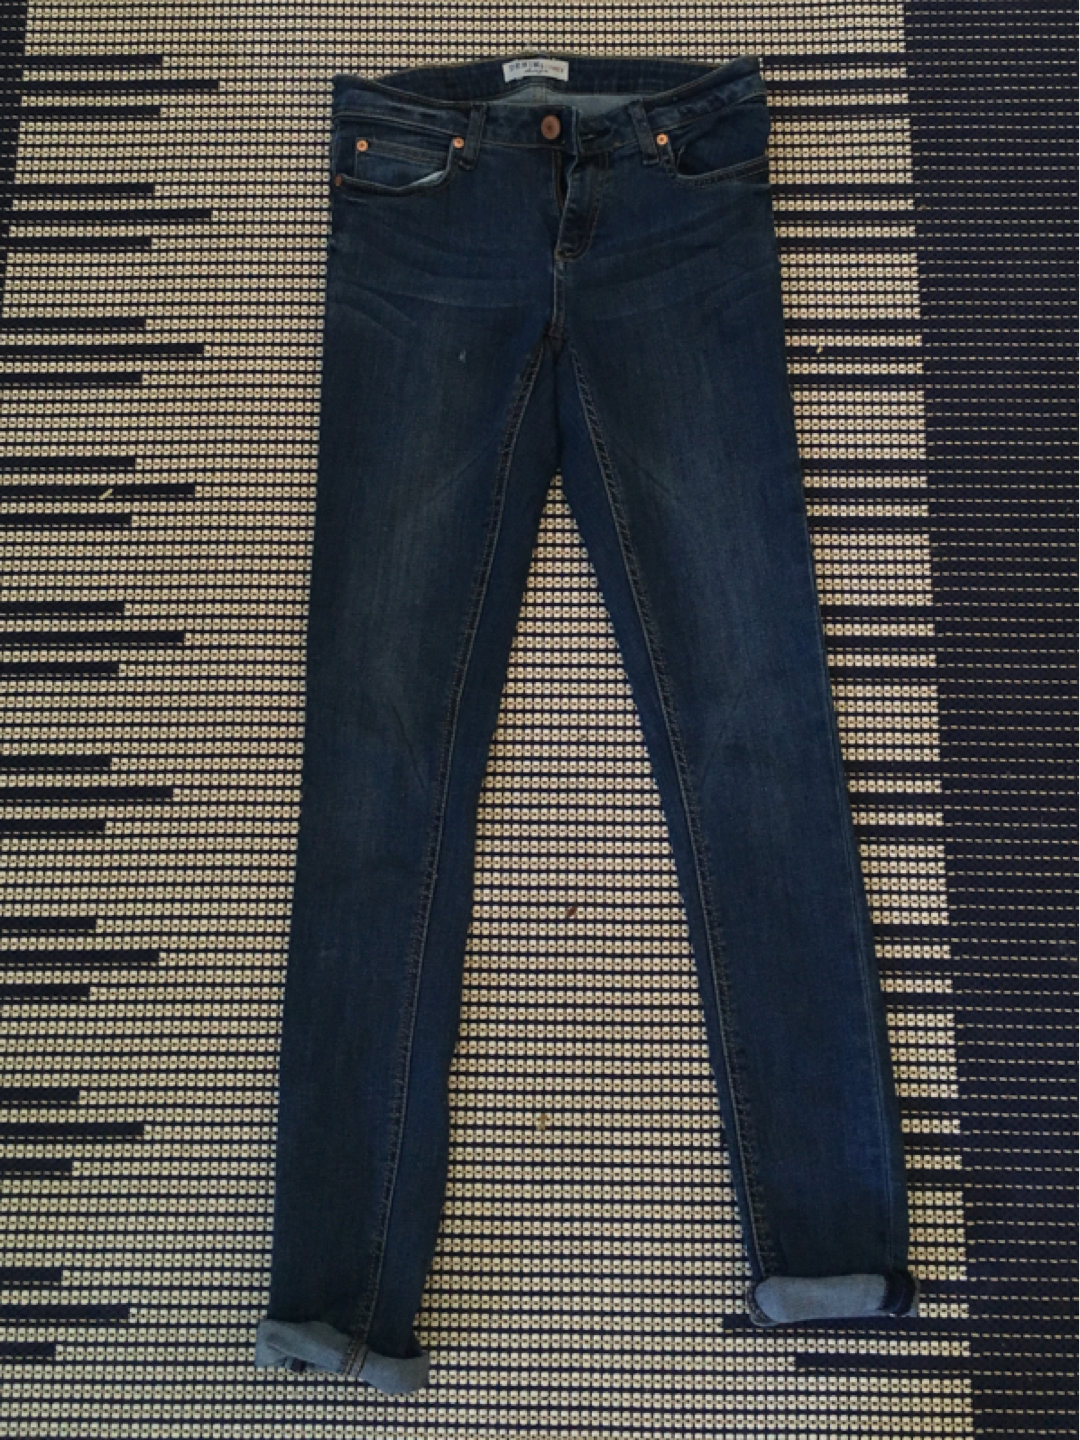 Damers bukser og jeans - LINDEX photo 1